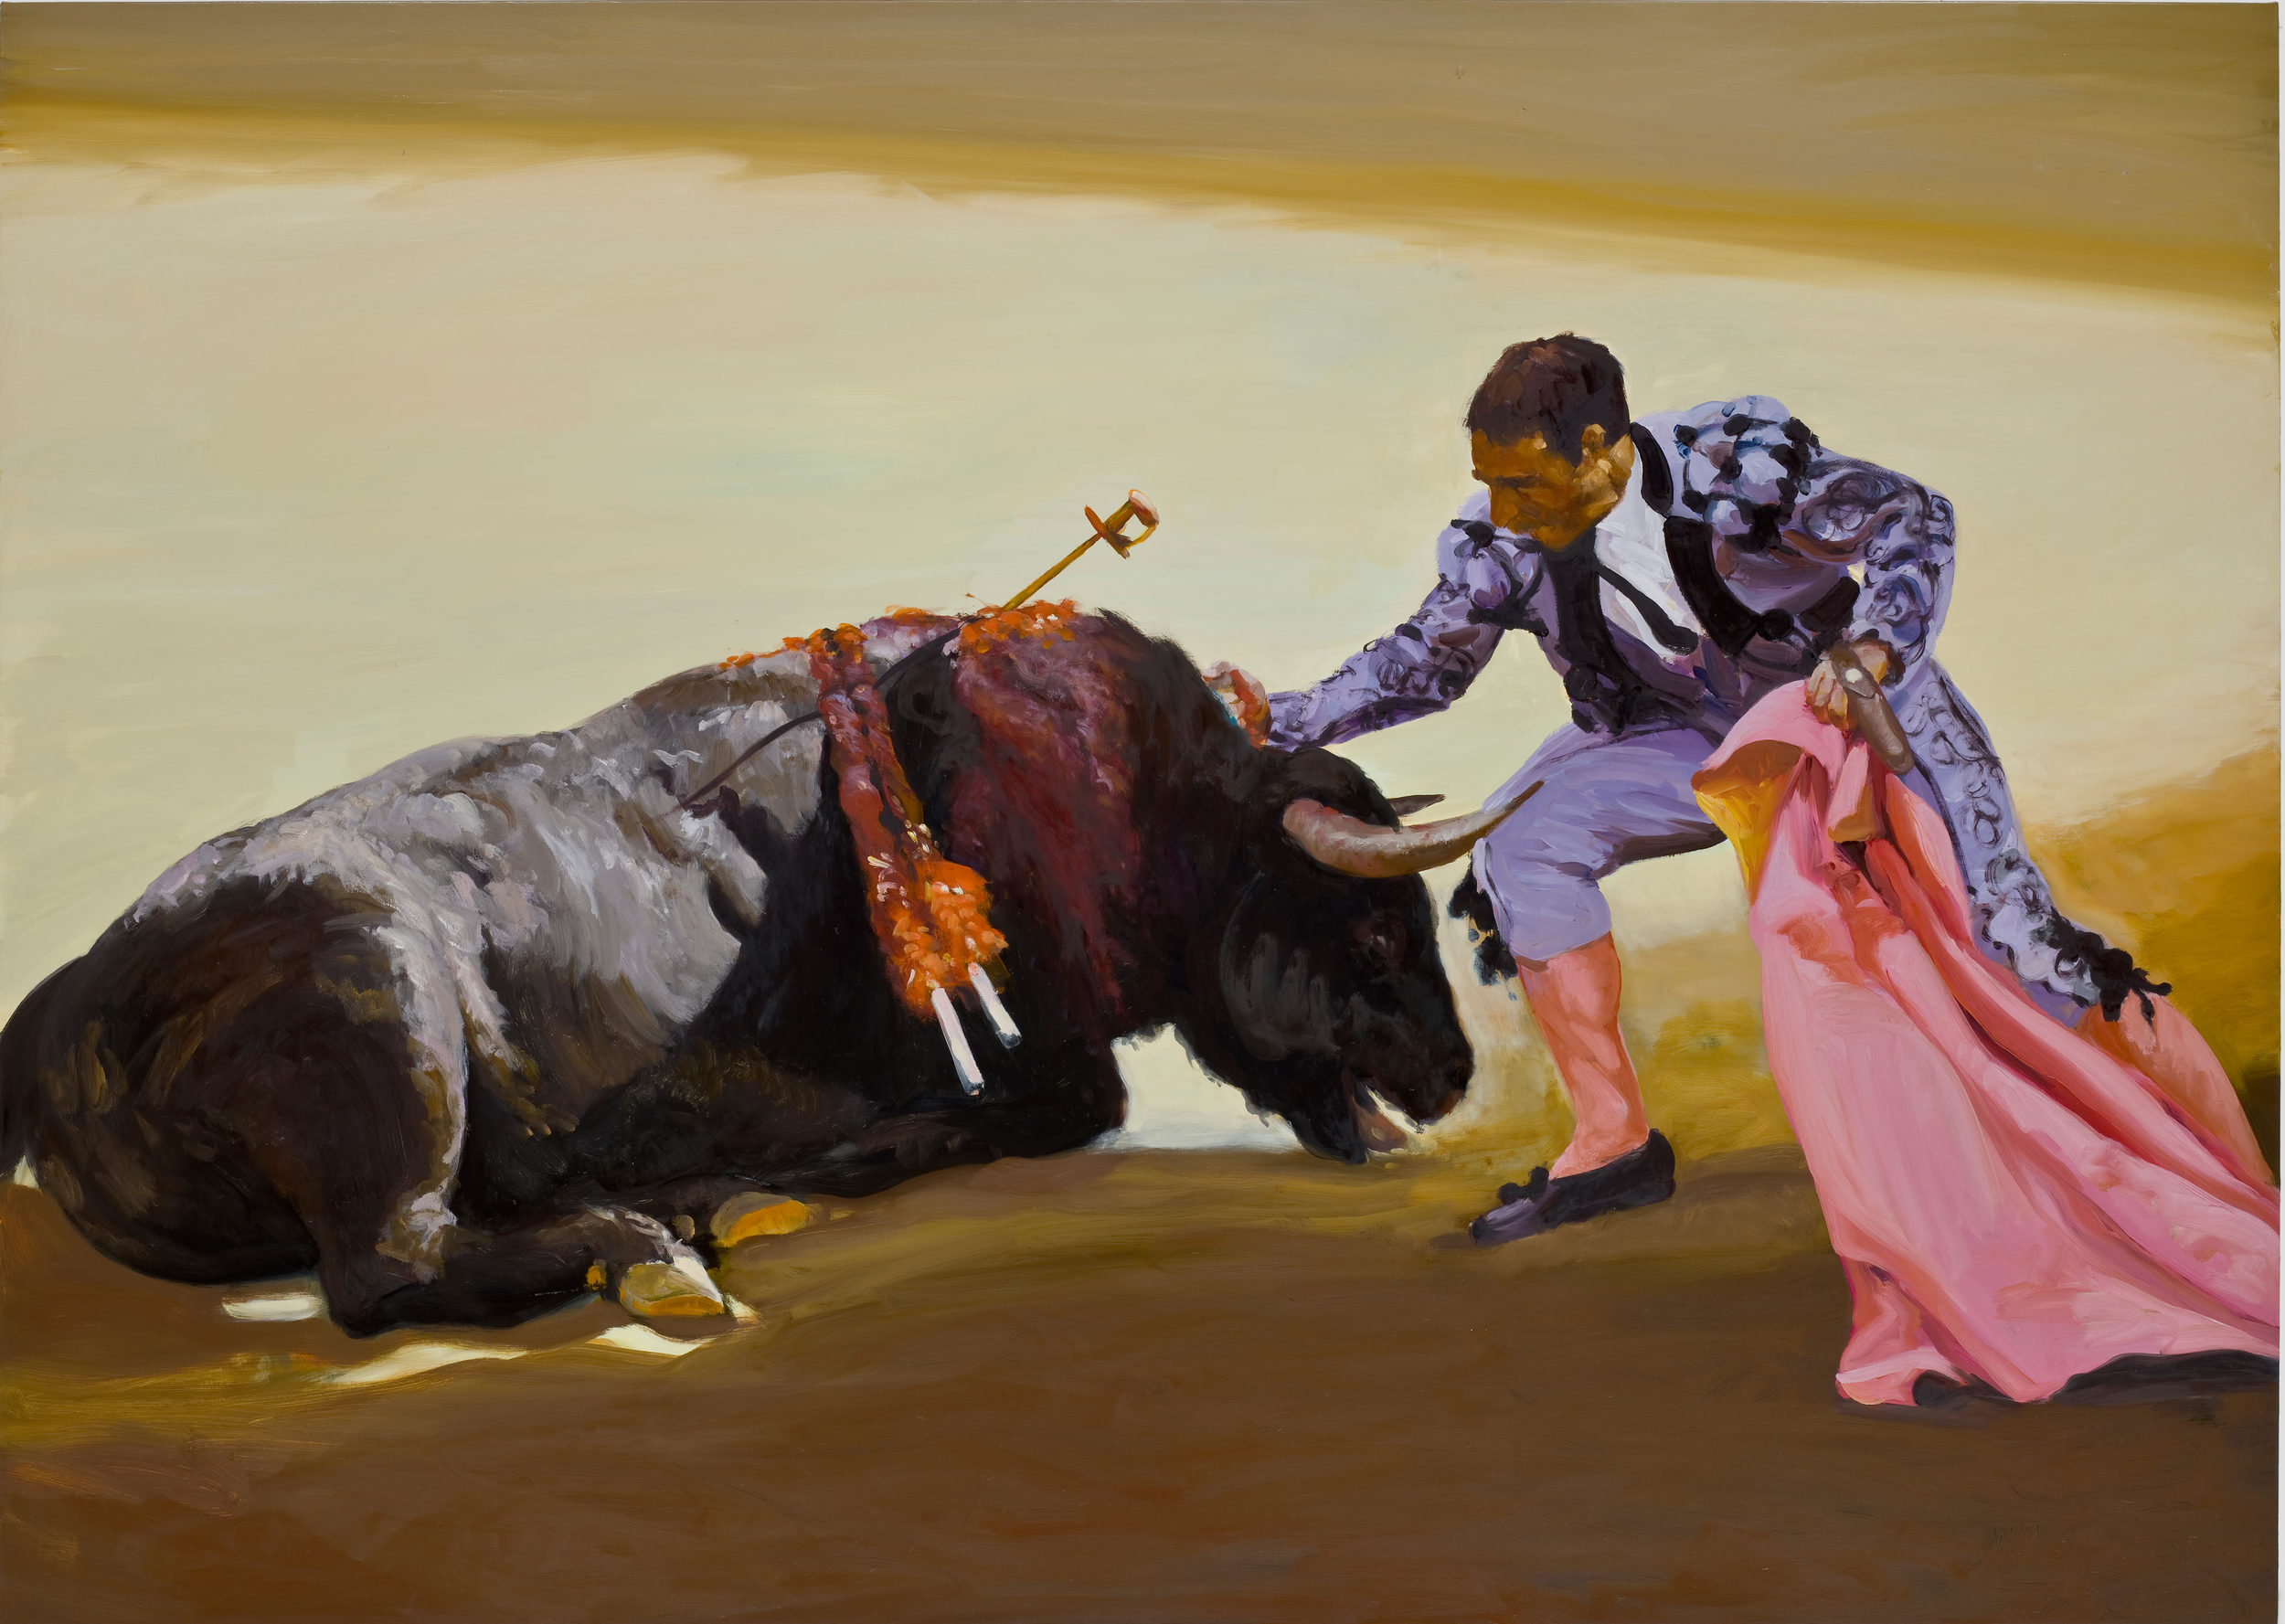 Corrida in Ronda #1, 2008. Oil on linen. 77 x 108 in. (196 x 274 cm.)